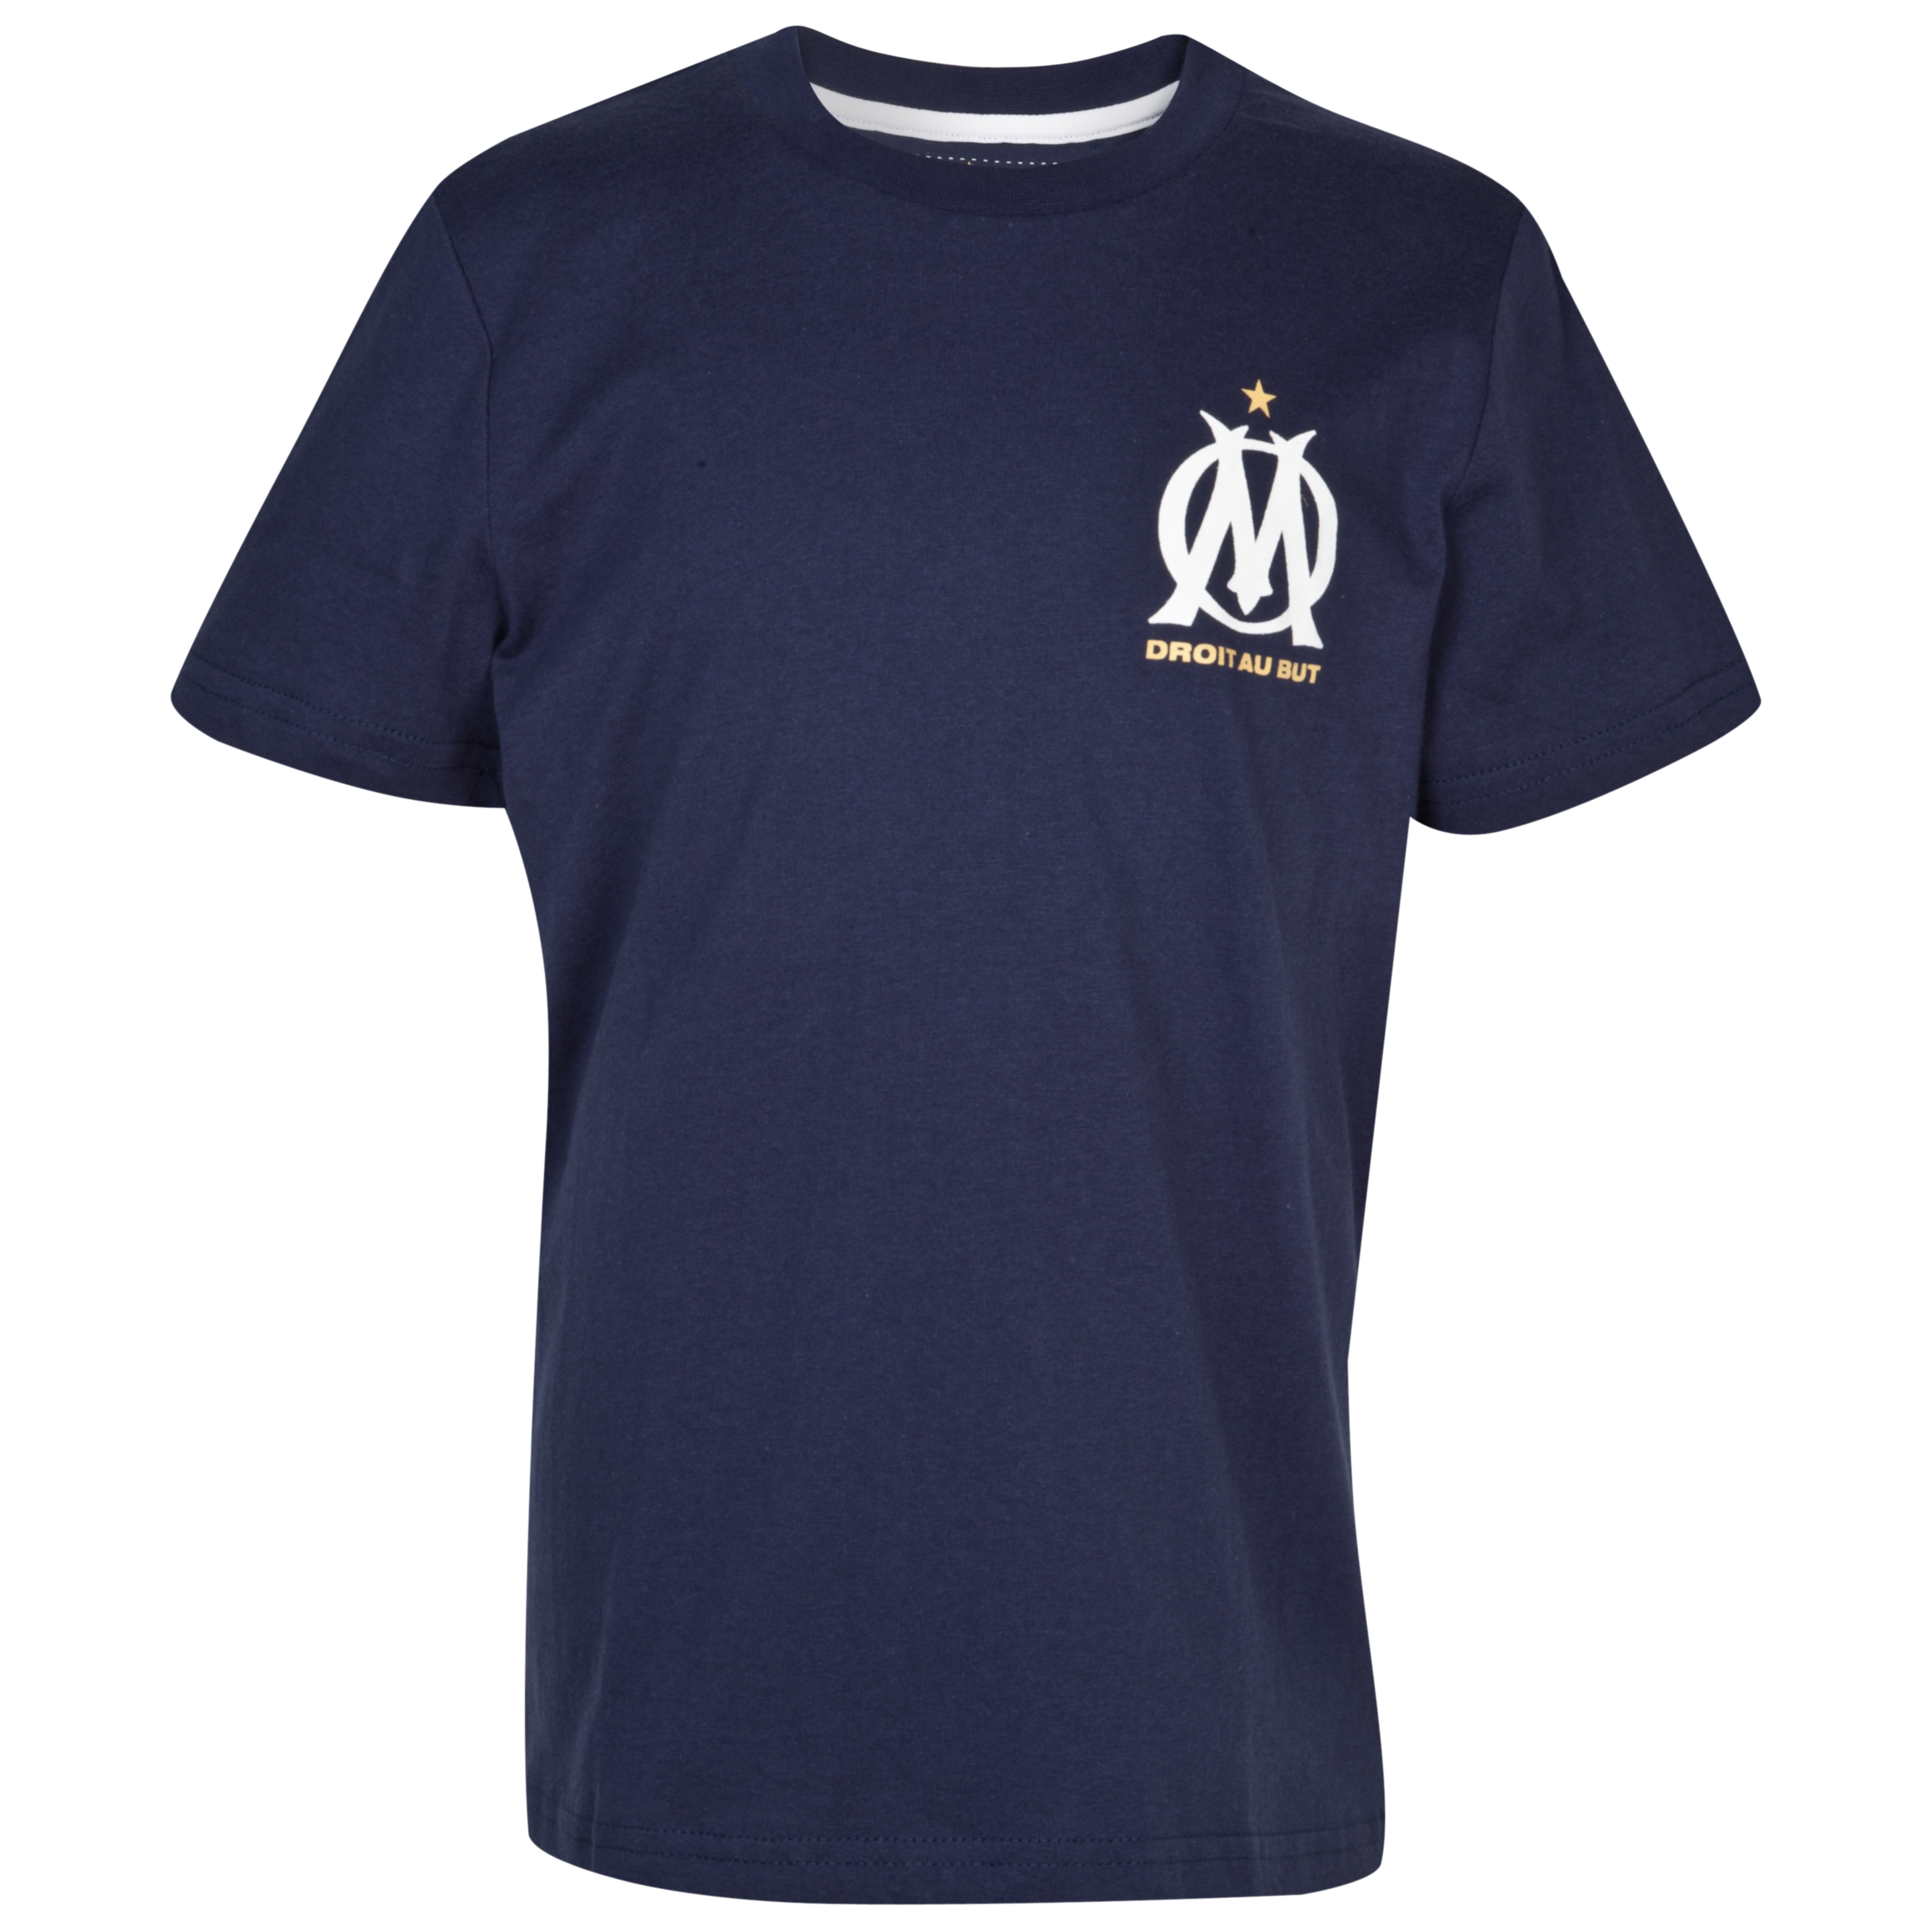 T-shirt Graffiti Olympique de Marseille - Bleu Navy - Enfant